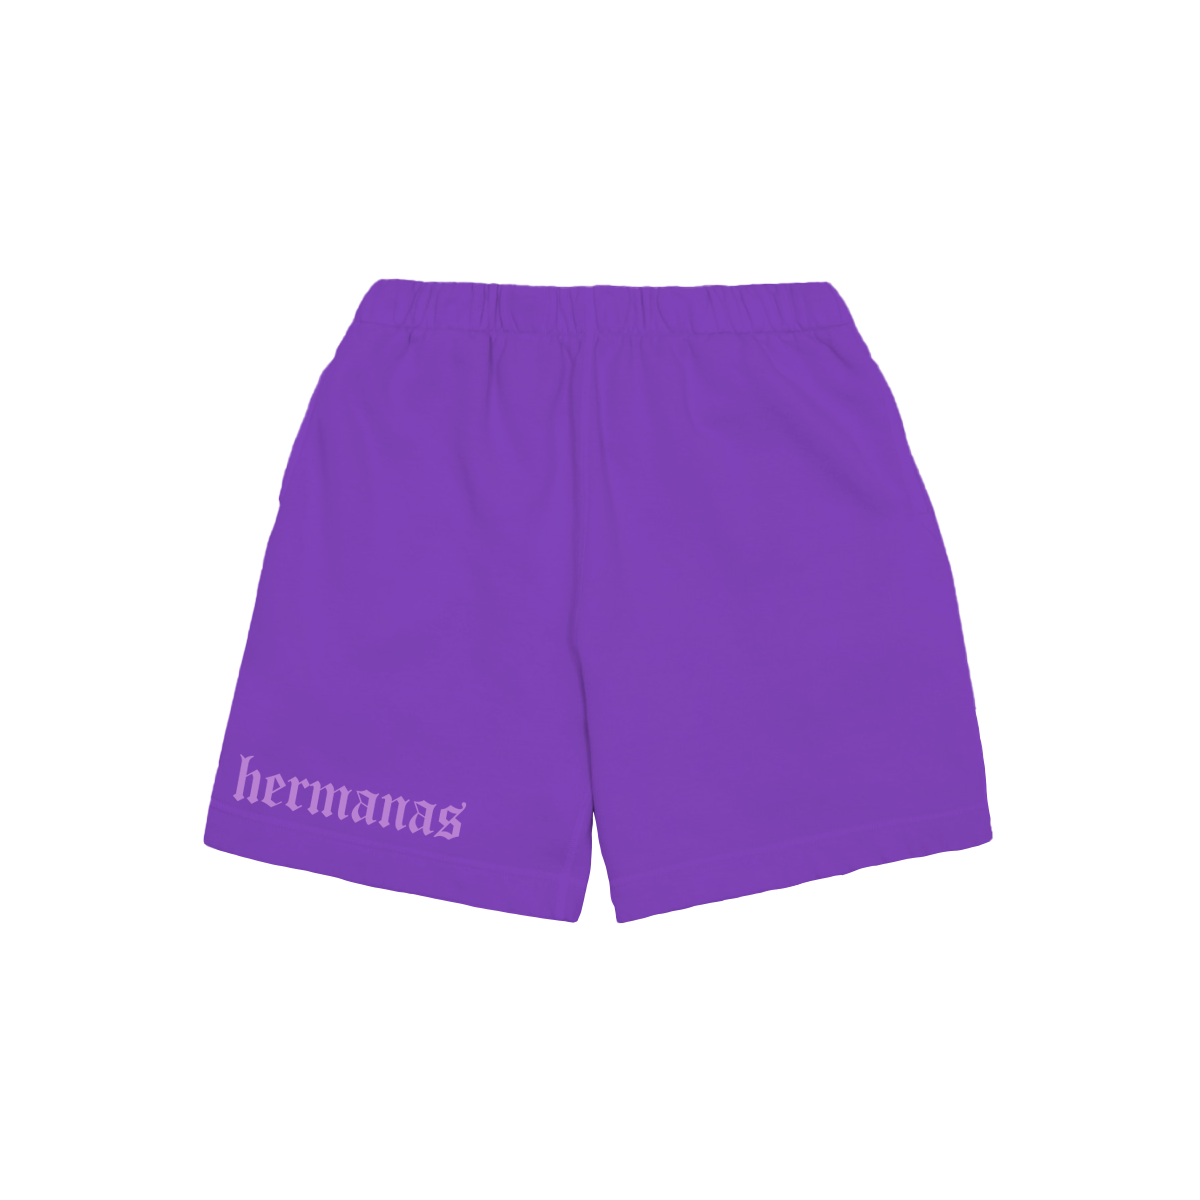 Hermanas Shorts Purple